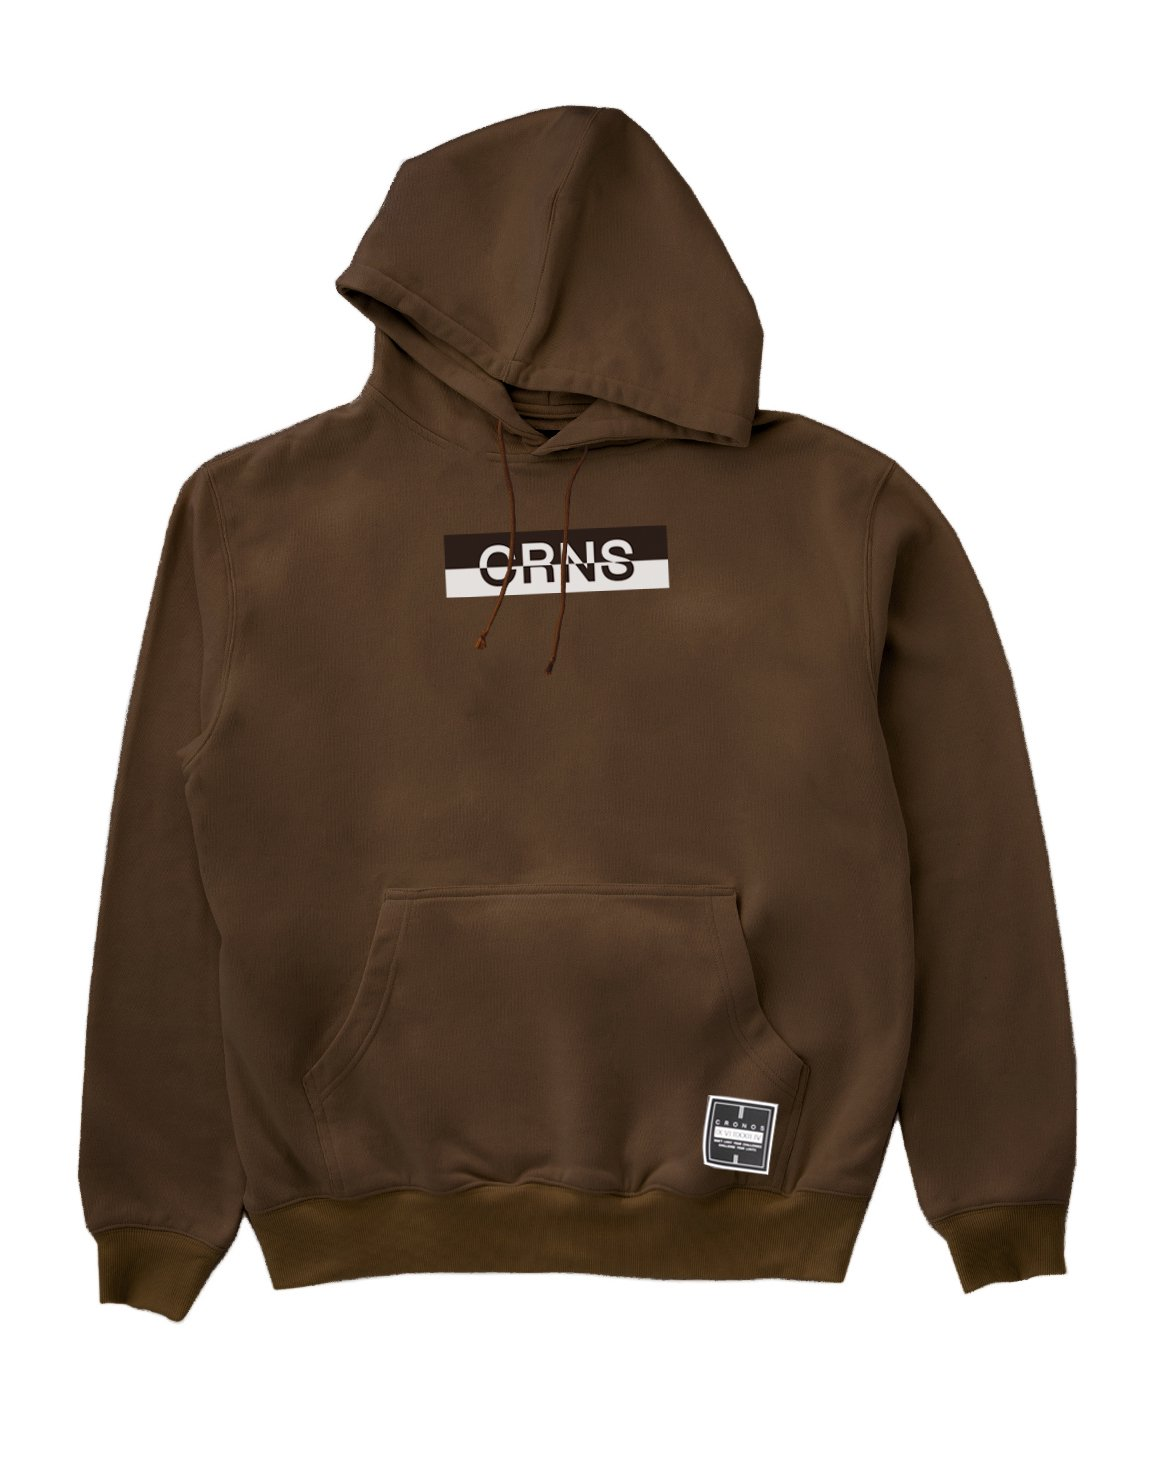 <img class='new_mark_img1' src='https://img.shop-pro.jp/img/new/icons1.gif' style='border:none;display:inline;margin:0px;padding:0px;width:auto;' />CRNS BOX LOGO PULL OVER PARKA 【BROWN】